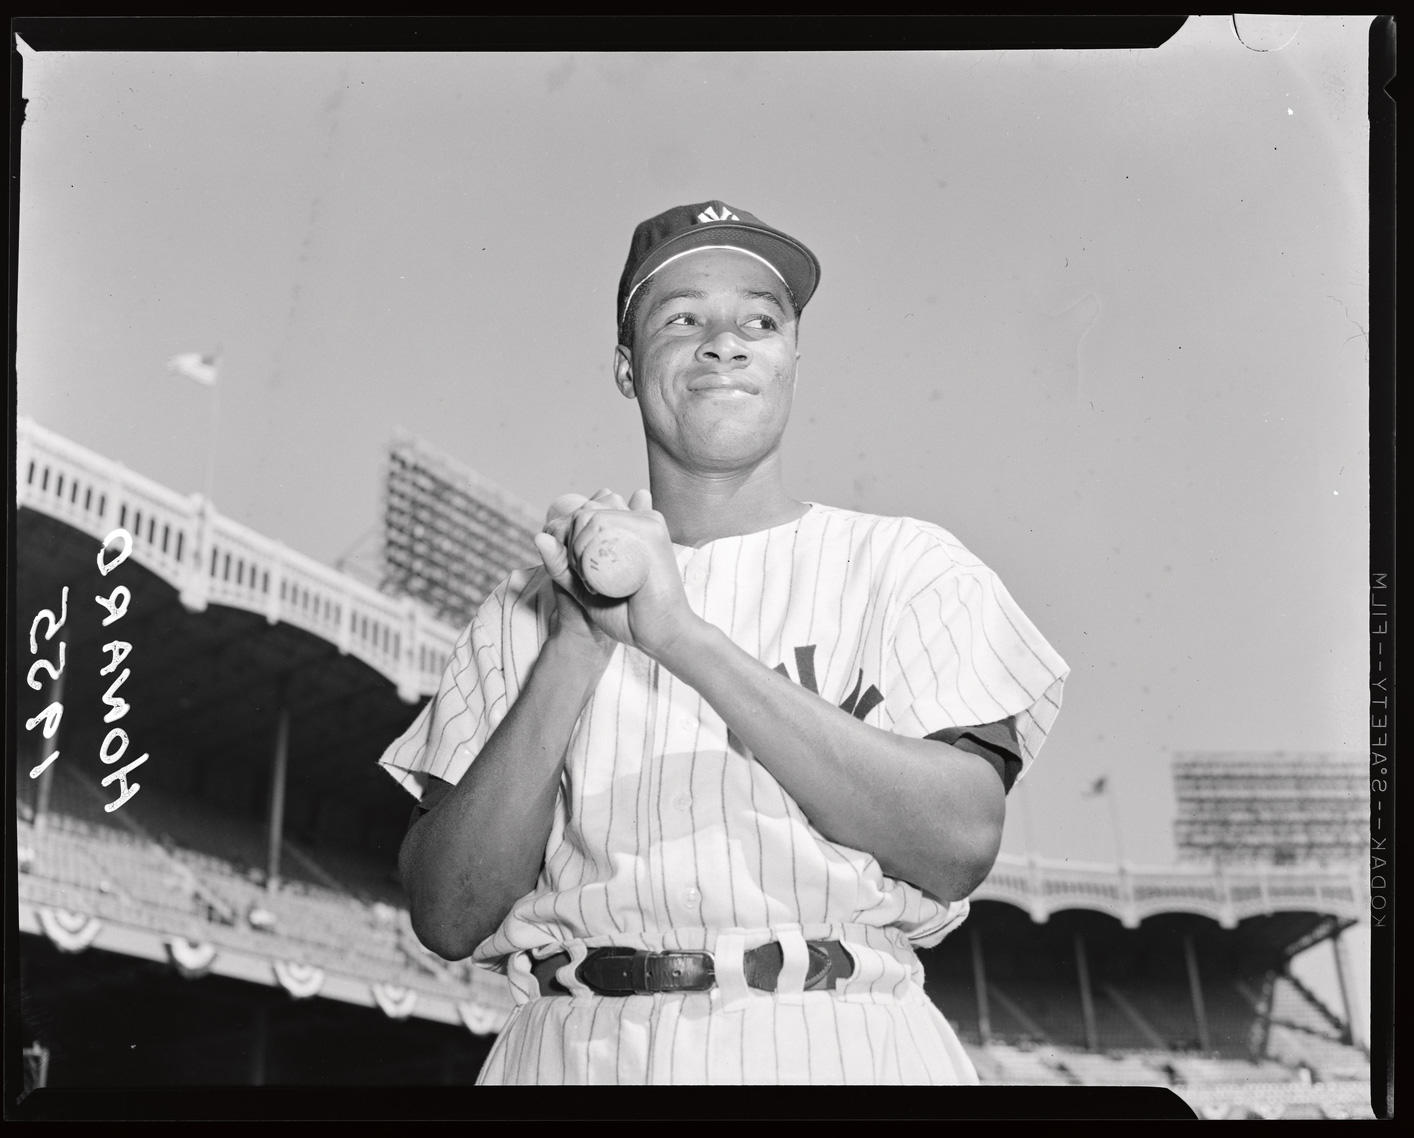 Photographer Osvaldo Salas captured this shot of Elston Howard, posed with his bat at Yankee Stadium in 1955. This image, and more, are now available in the <em>Hall of Fame Digital Archive</em>. (National Baseball Hall of Fame)